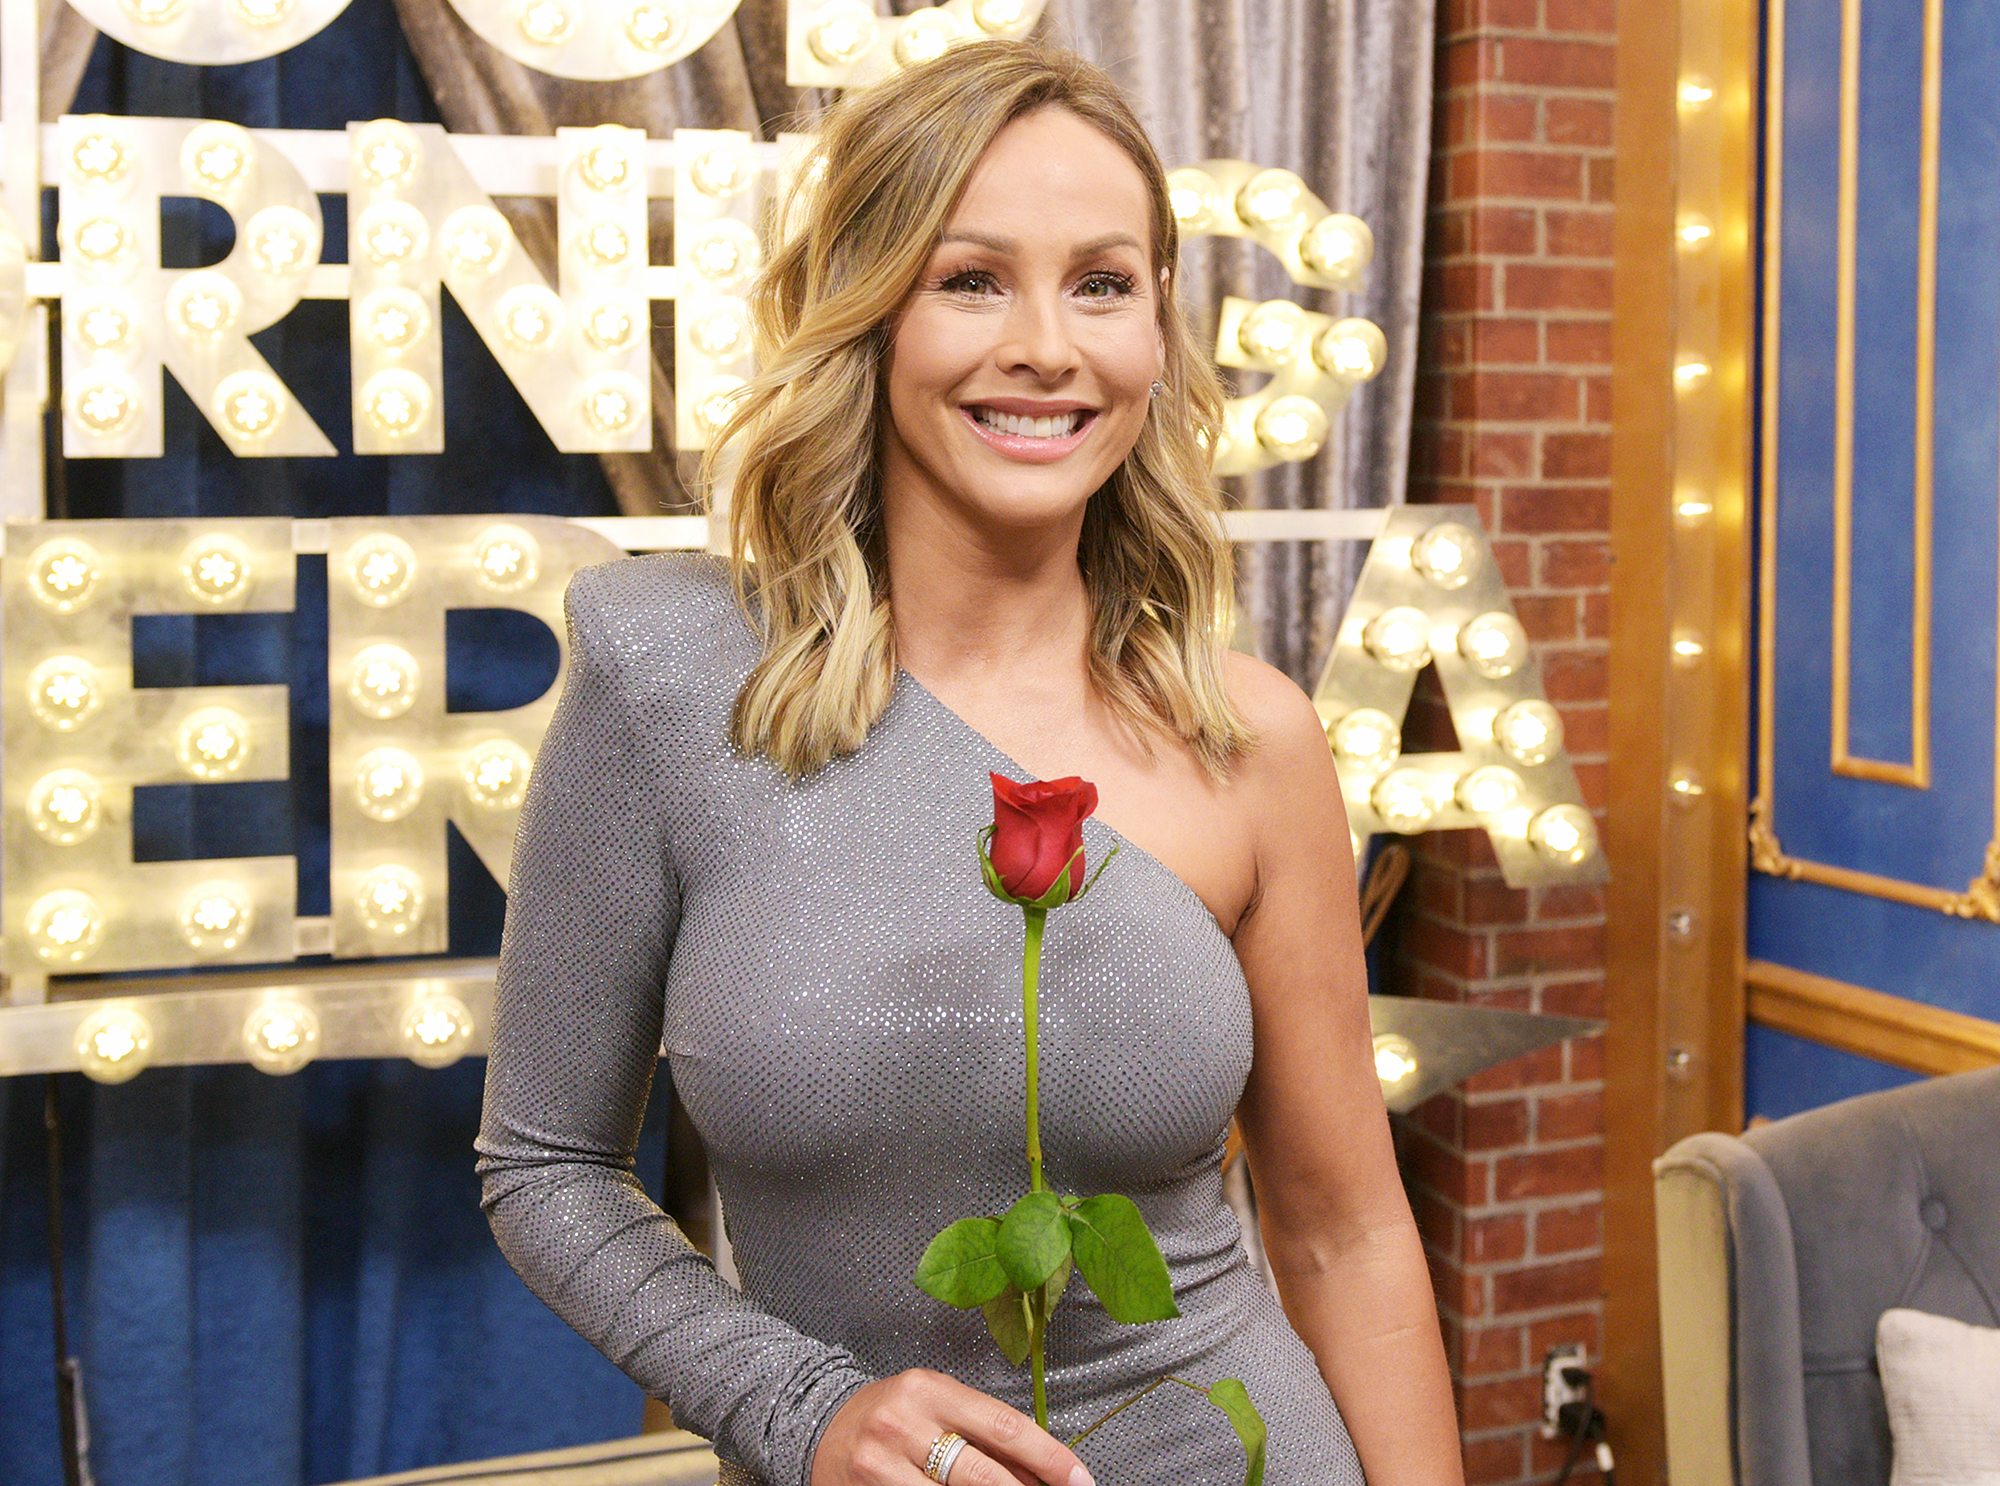 Clare Crawley on Good Morning America Clare Crawley Has Googled Her Bachelor Contestants and Gives Filming Update